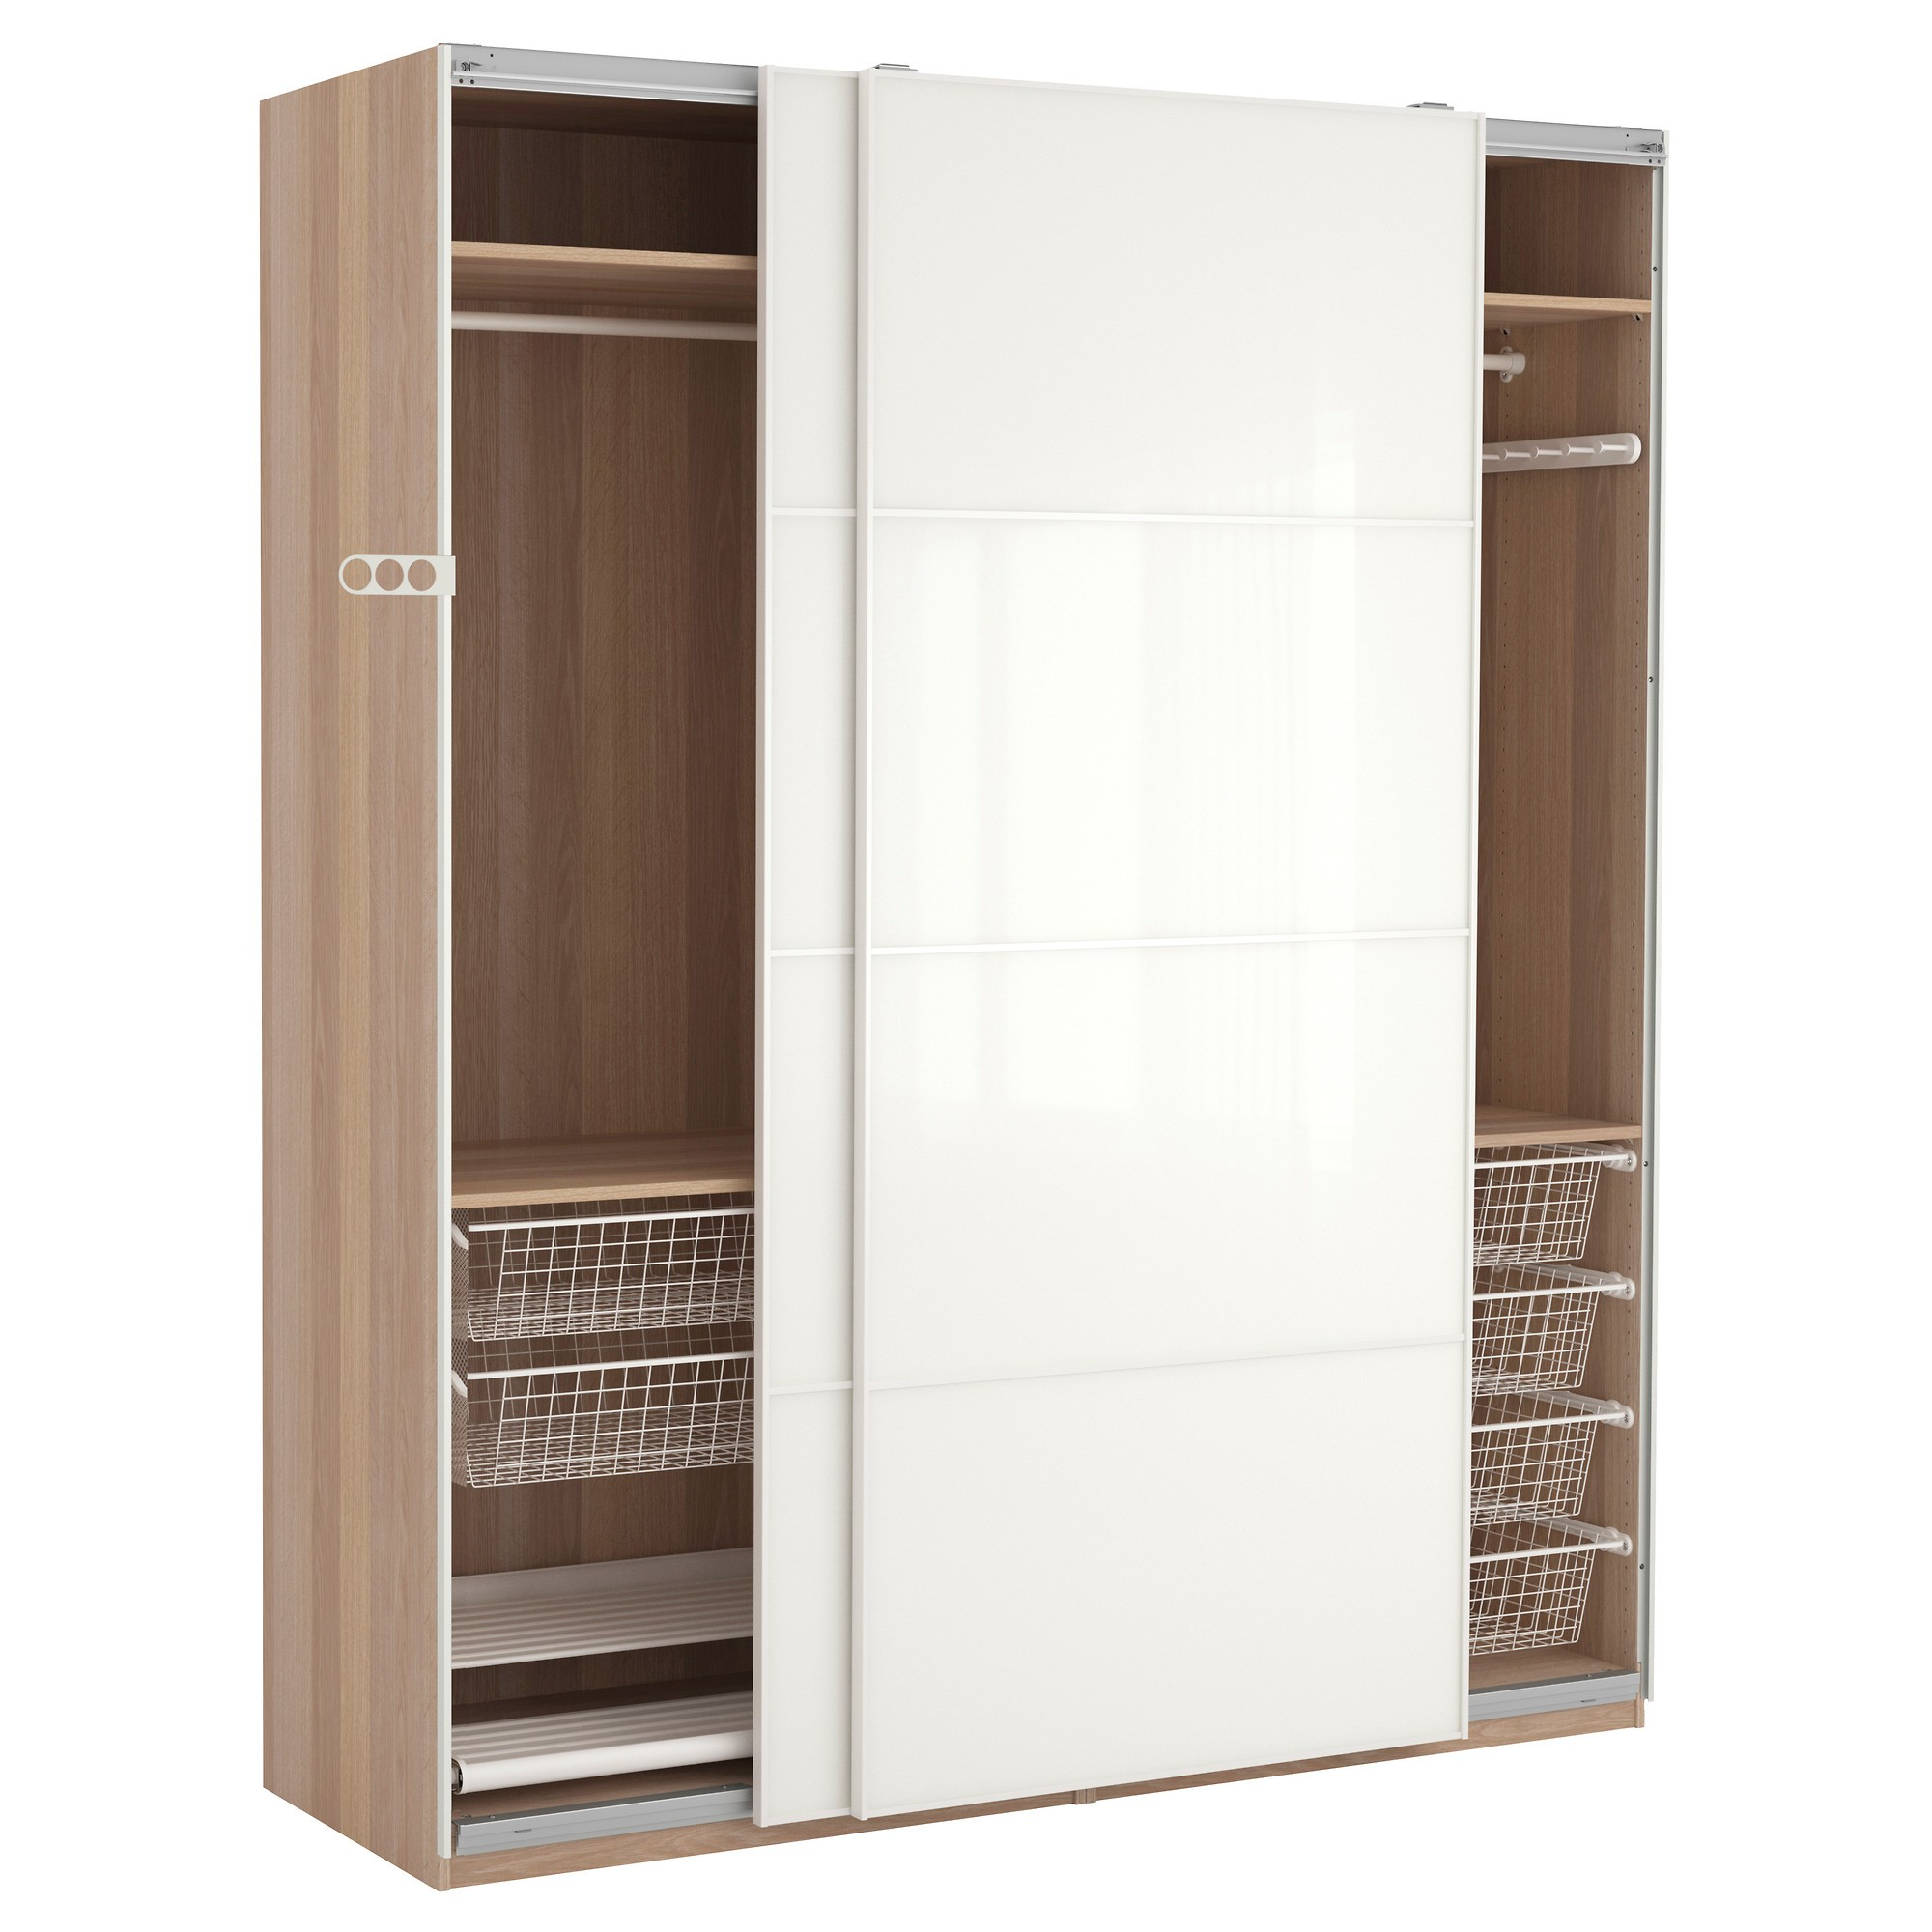 Elegant armoire et dressing ikea with ikea dressing d angle for Dressing armoire